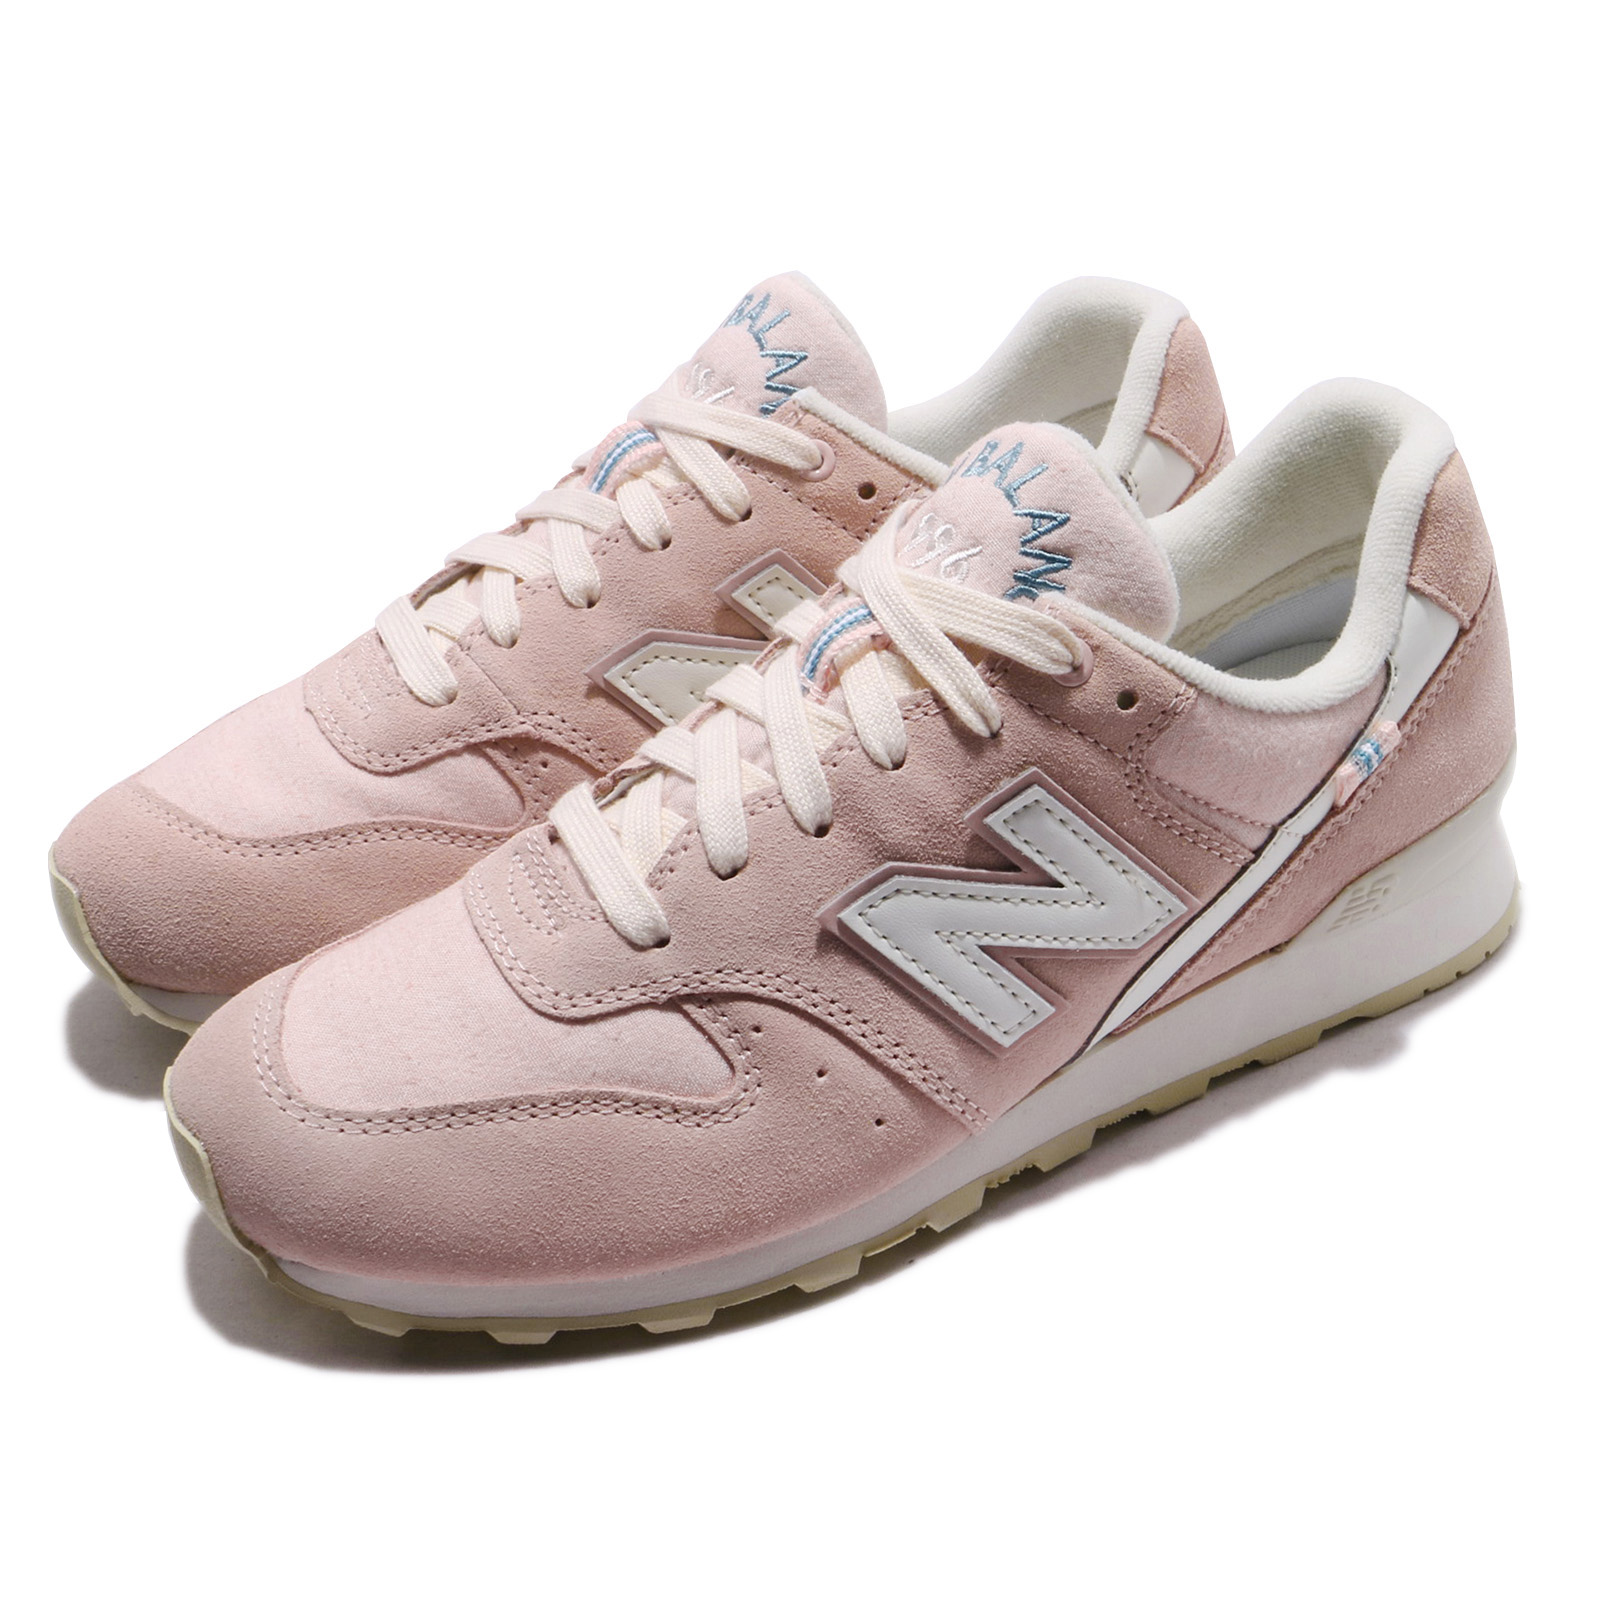 huge selection of 85a42 707f8 Details about New Balance WR996YD D Wide Pink White Women Running Shoes  Sneakers WR996YDD